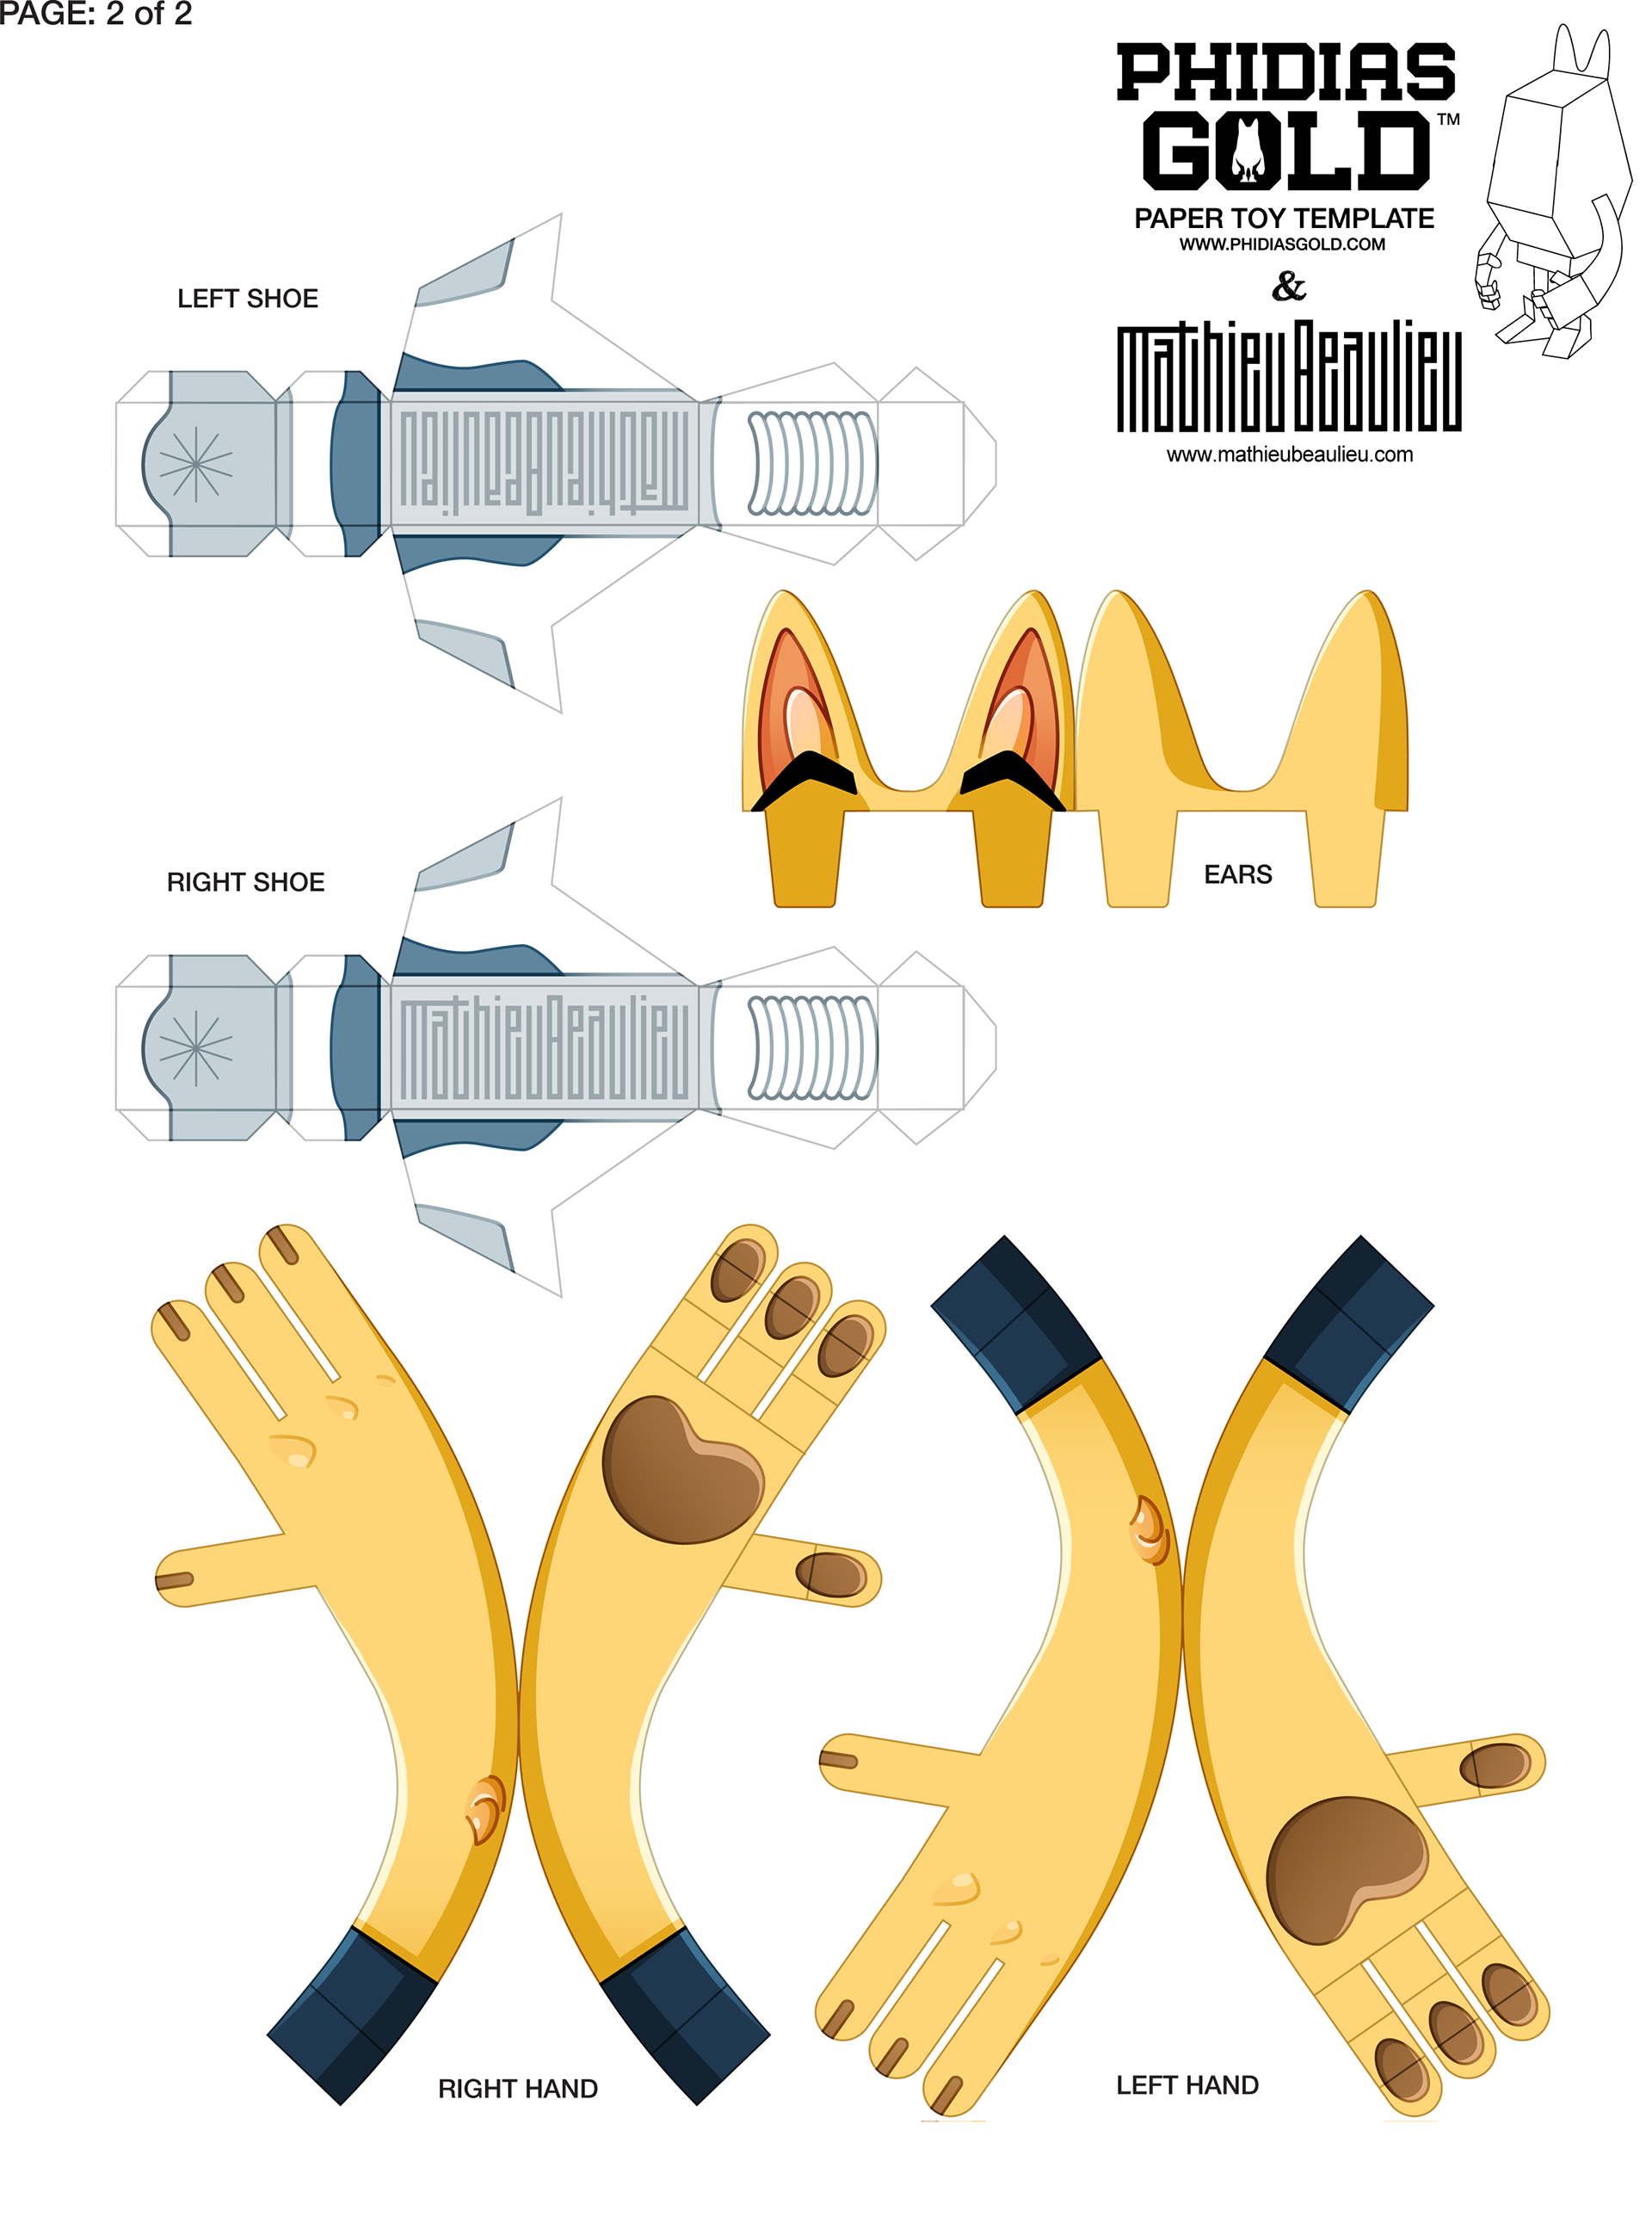 Feel Free To Download And Print This Template If You Wish Build Your Own Yellow Dog Model